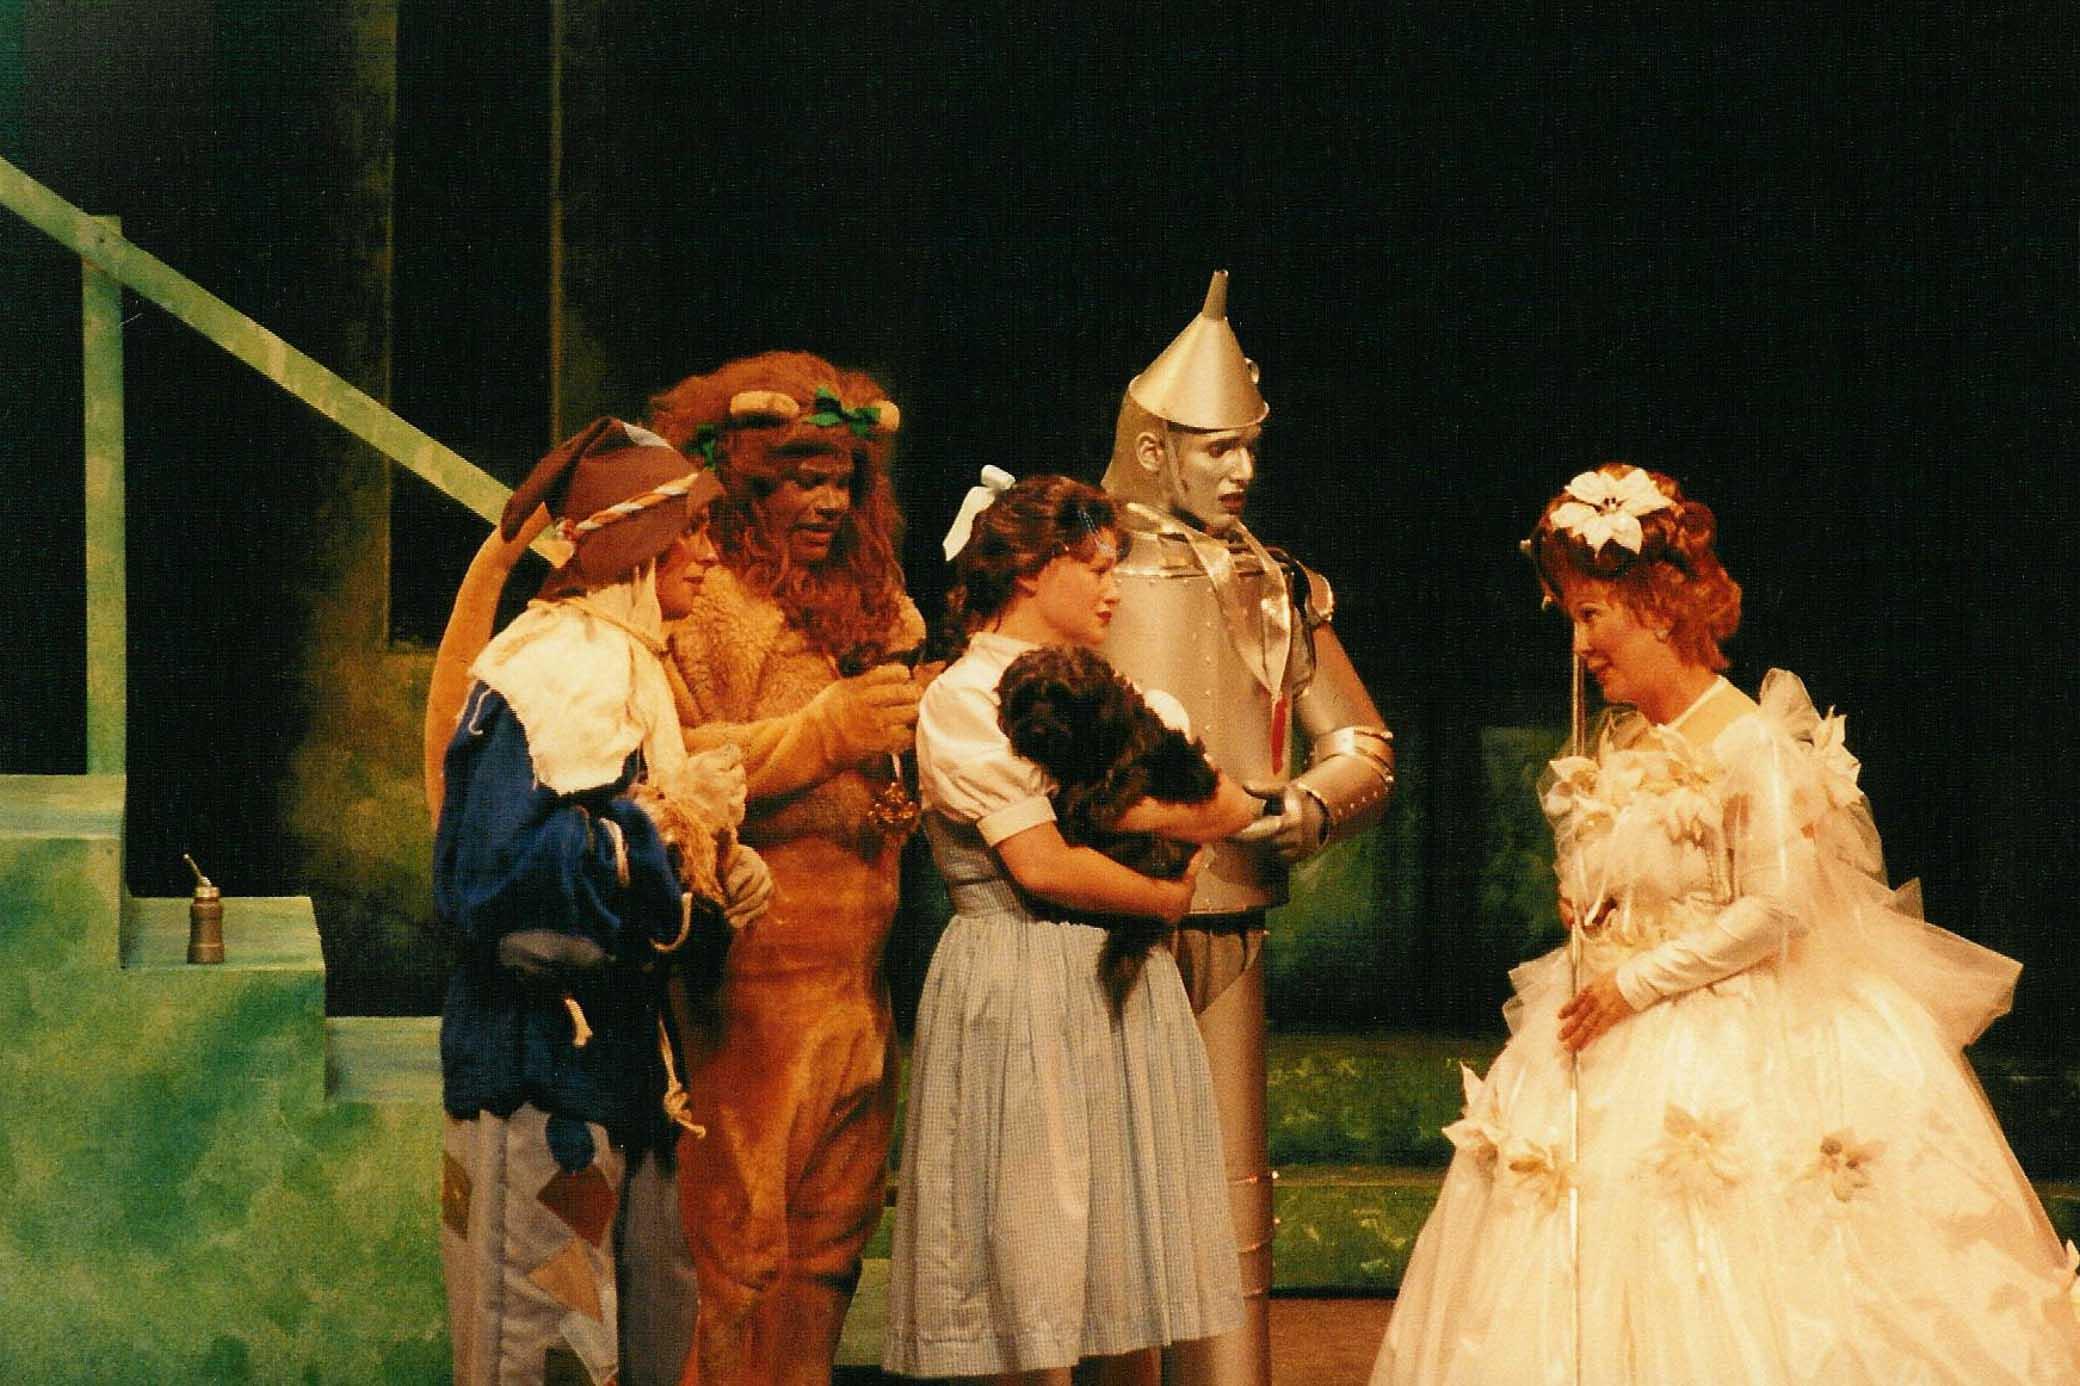 My dog Munster staring as Toto in the Wizard of Oz at Theatre Winter Haven with Lindsey Alley (Note this image was not taken by me and was not copyrighted by me)